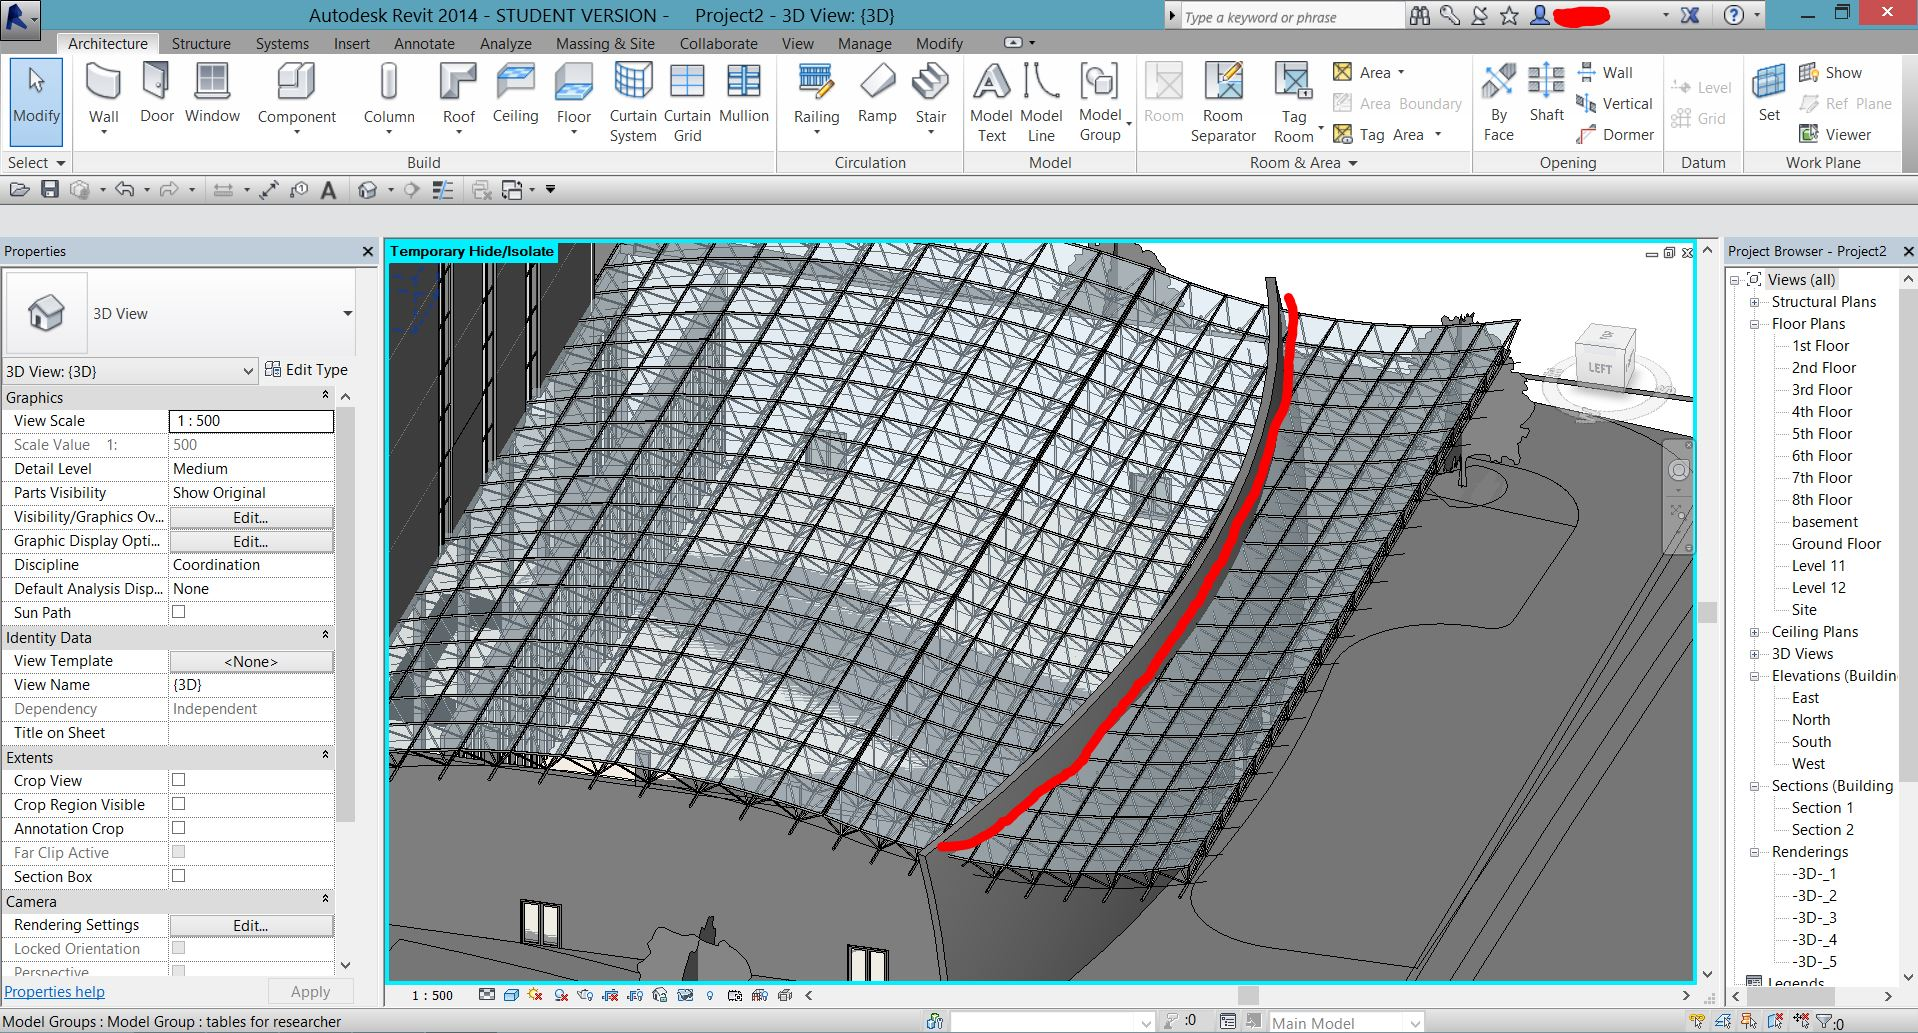 how to crop the space frame by vertical opening - Autodesk Community ...